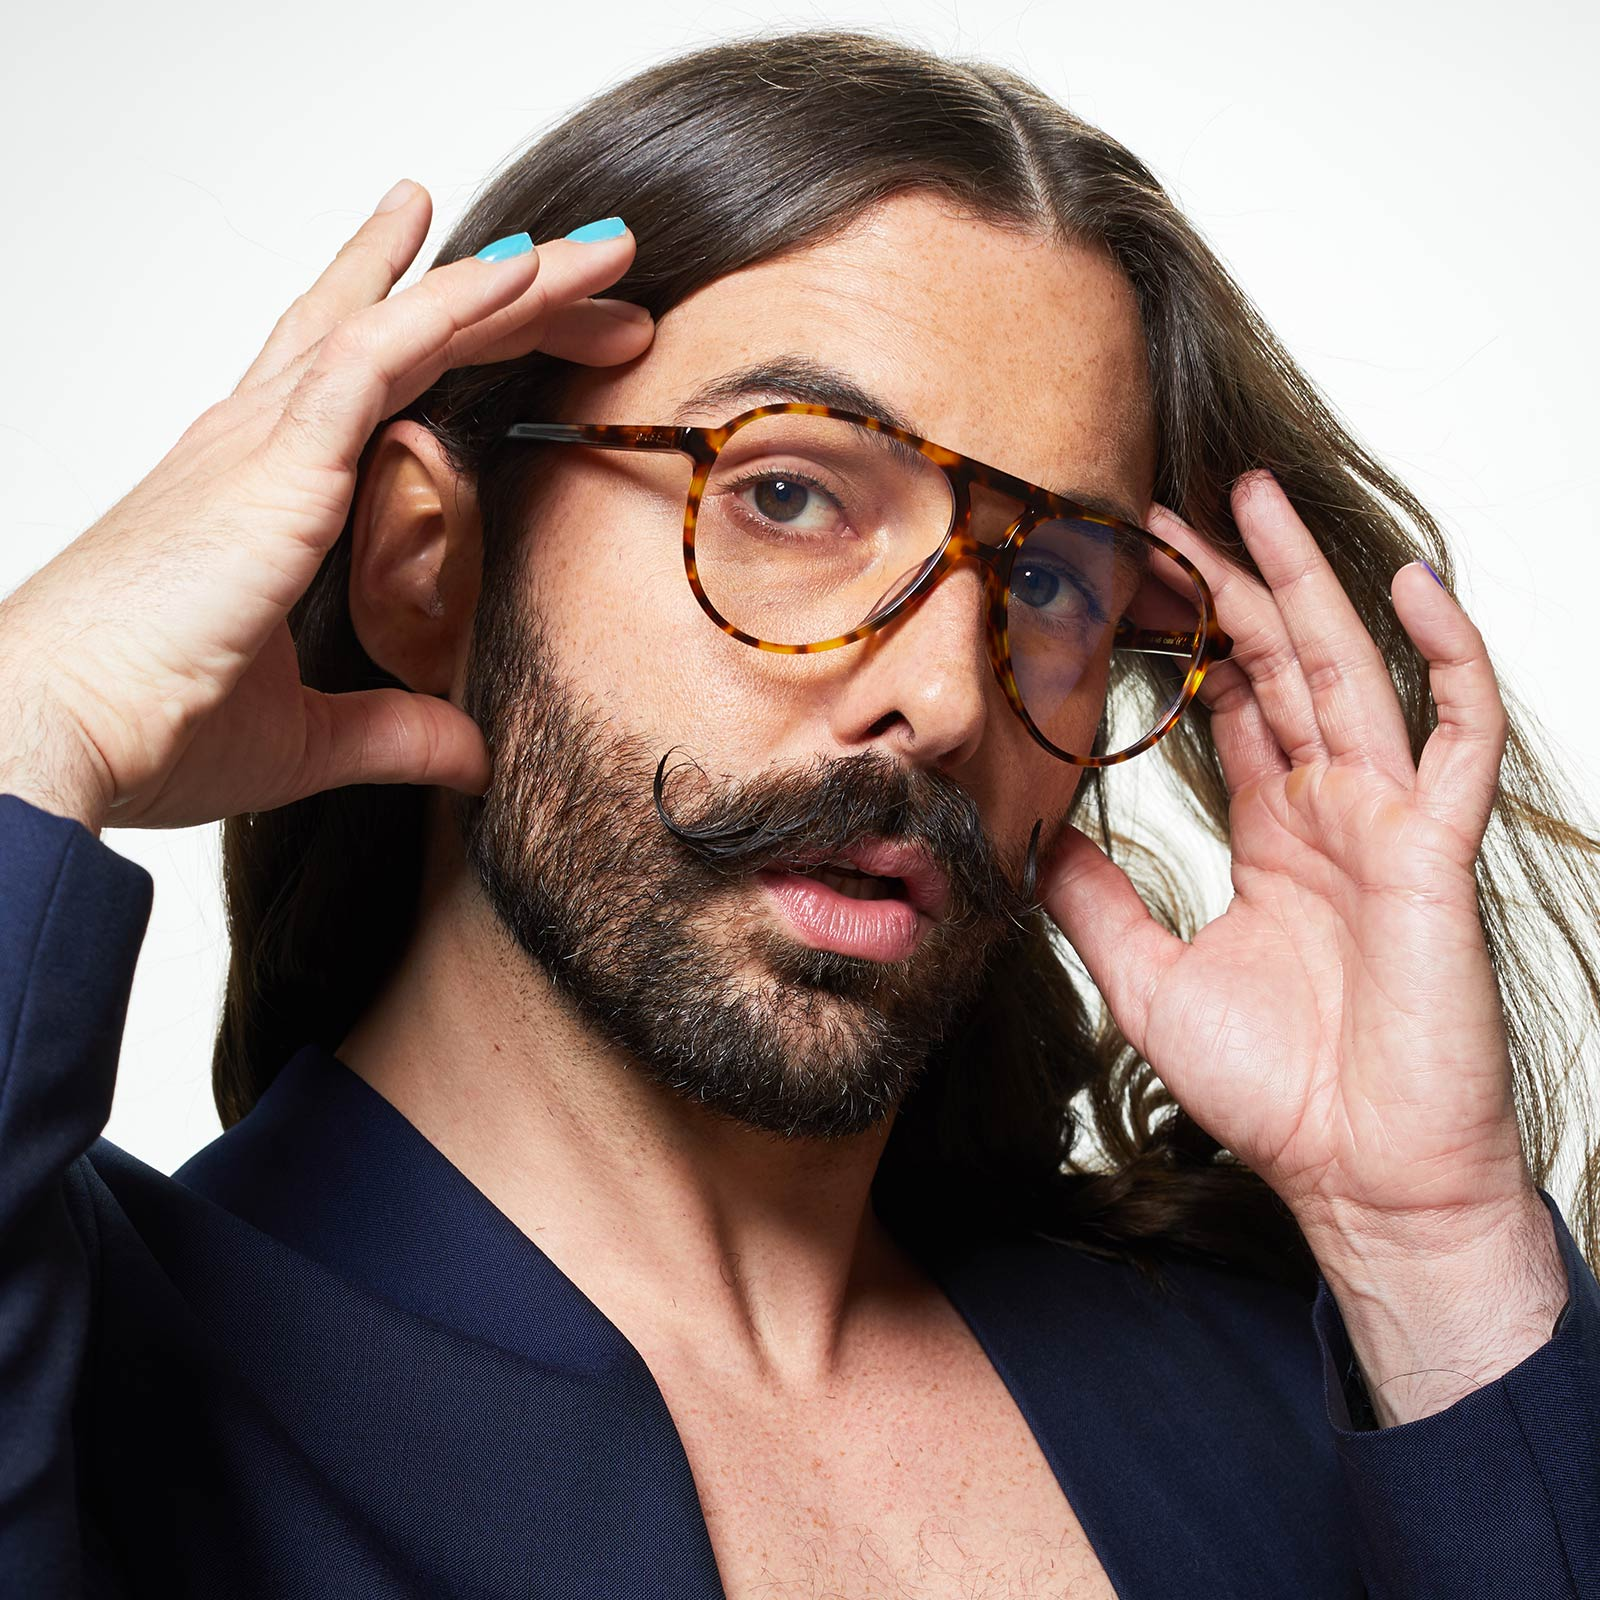 JONATHAN VAN NESS - TOSCA + AMBER TORTOISE + BLUE LIGHT TECHNOLOGY CLEAR